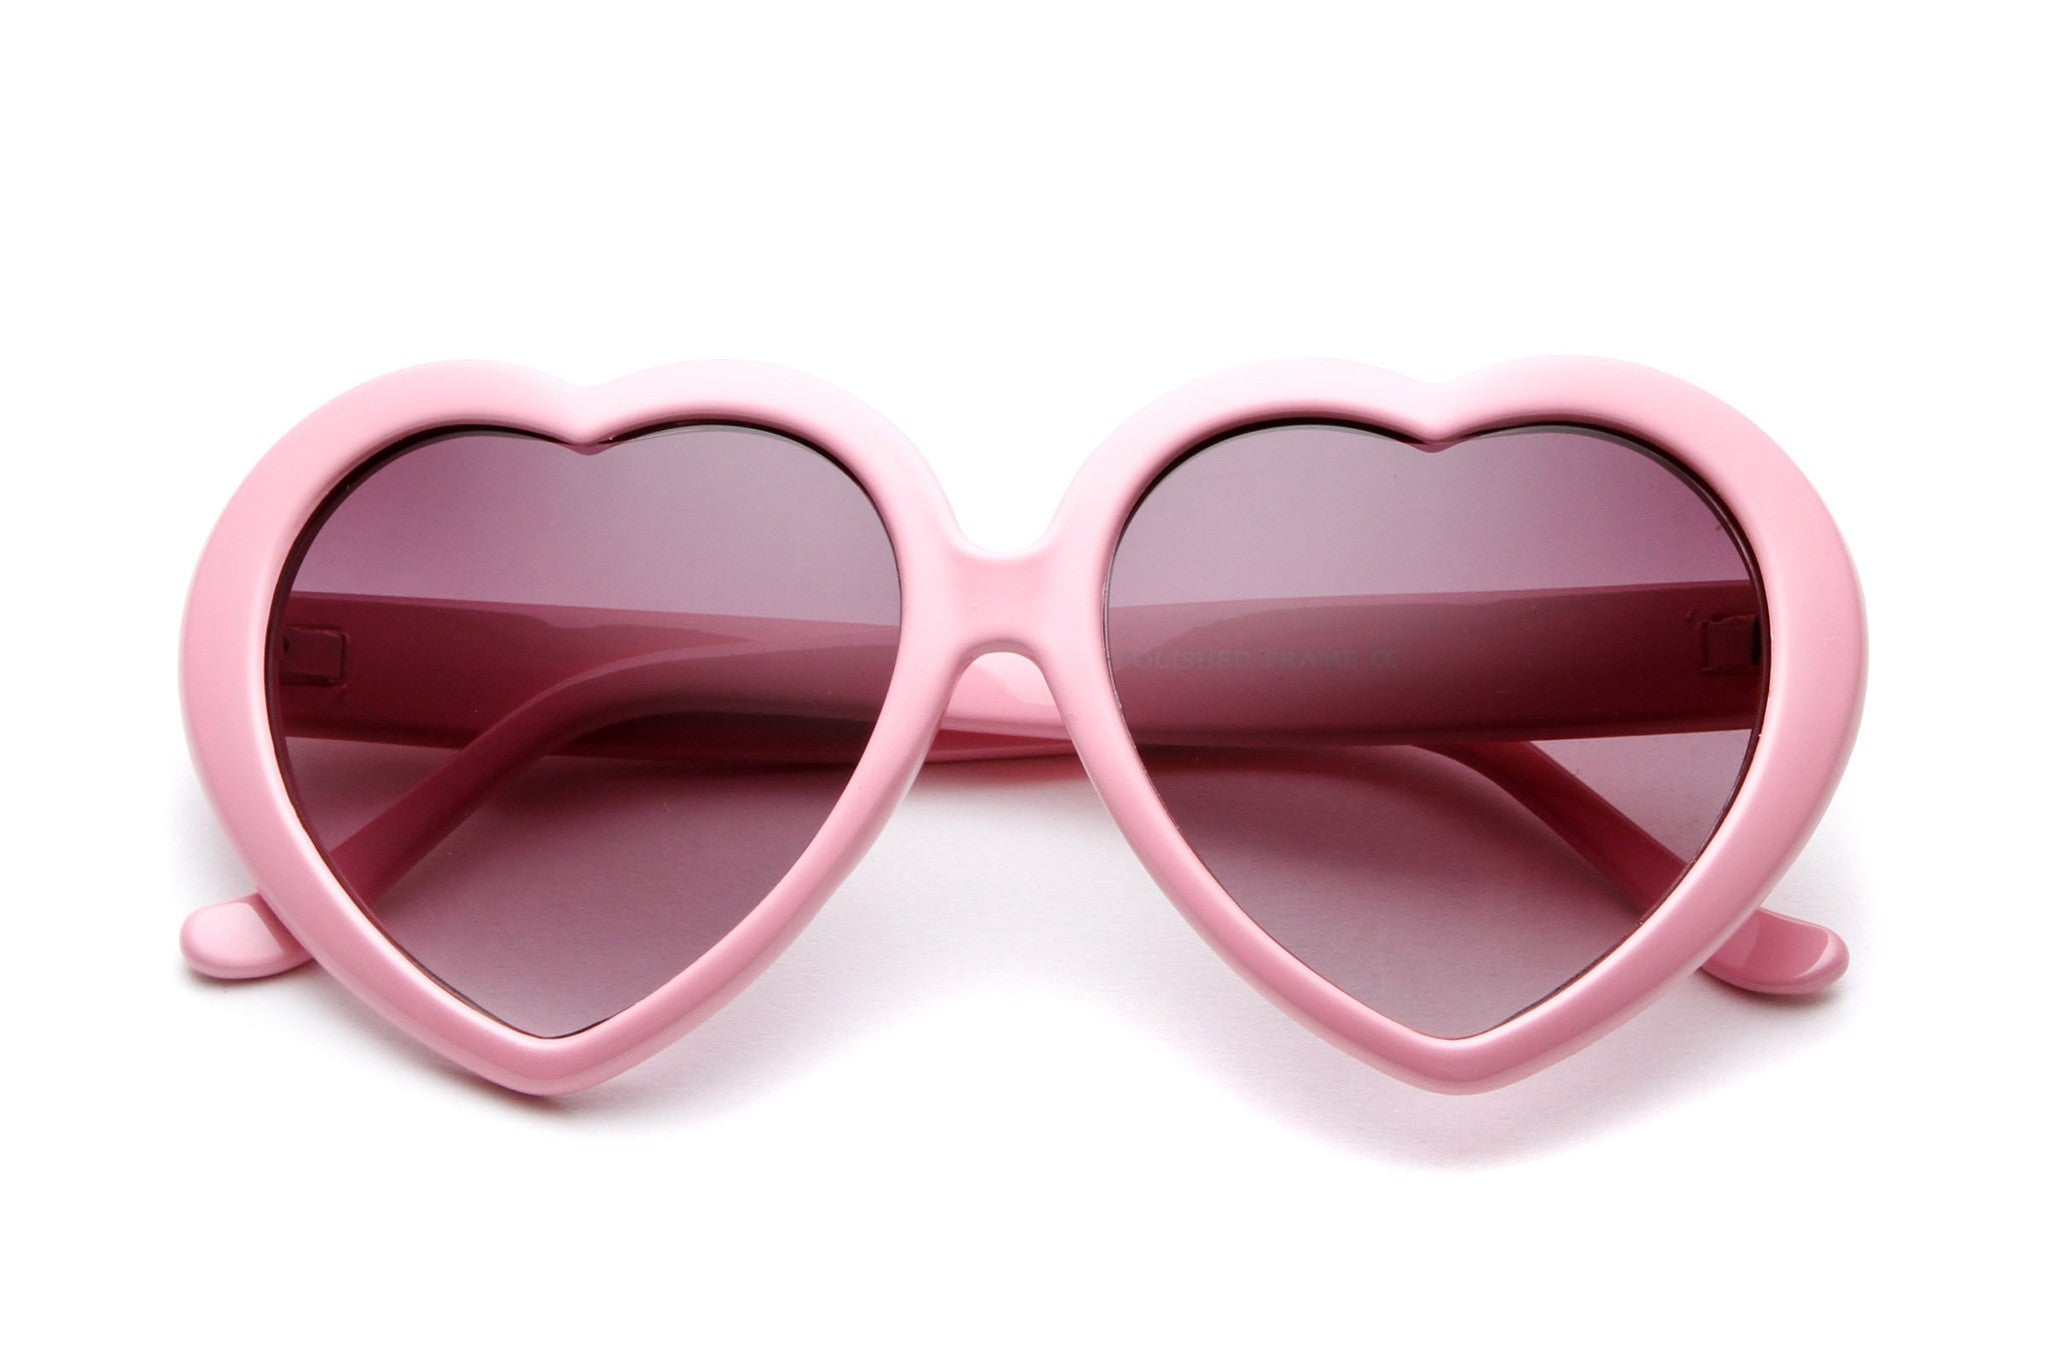 Love Heart Shaped Sunglasses